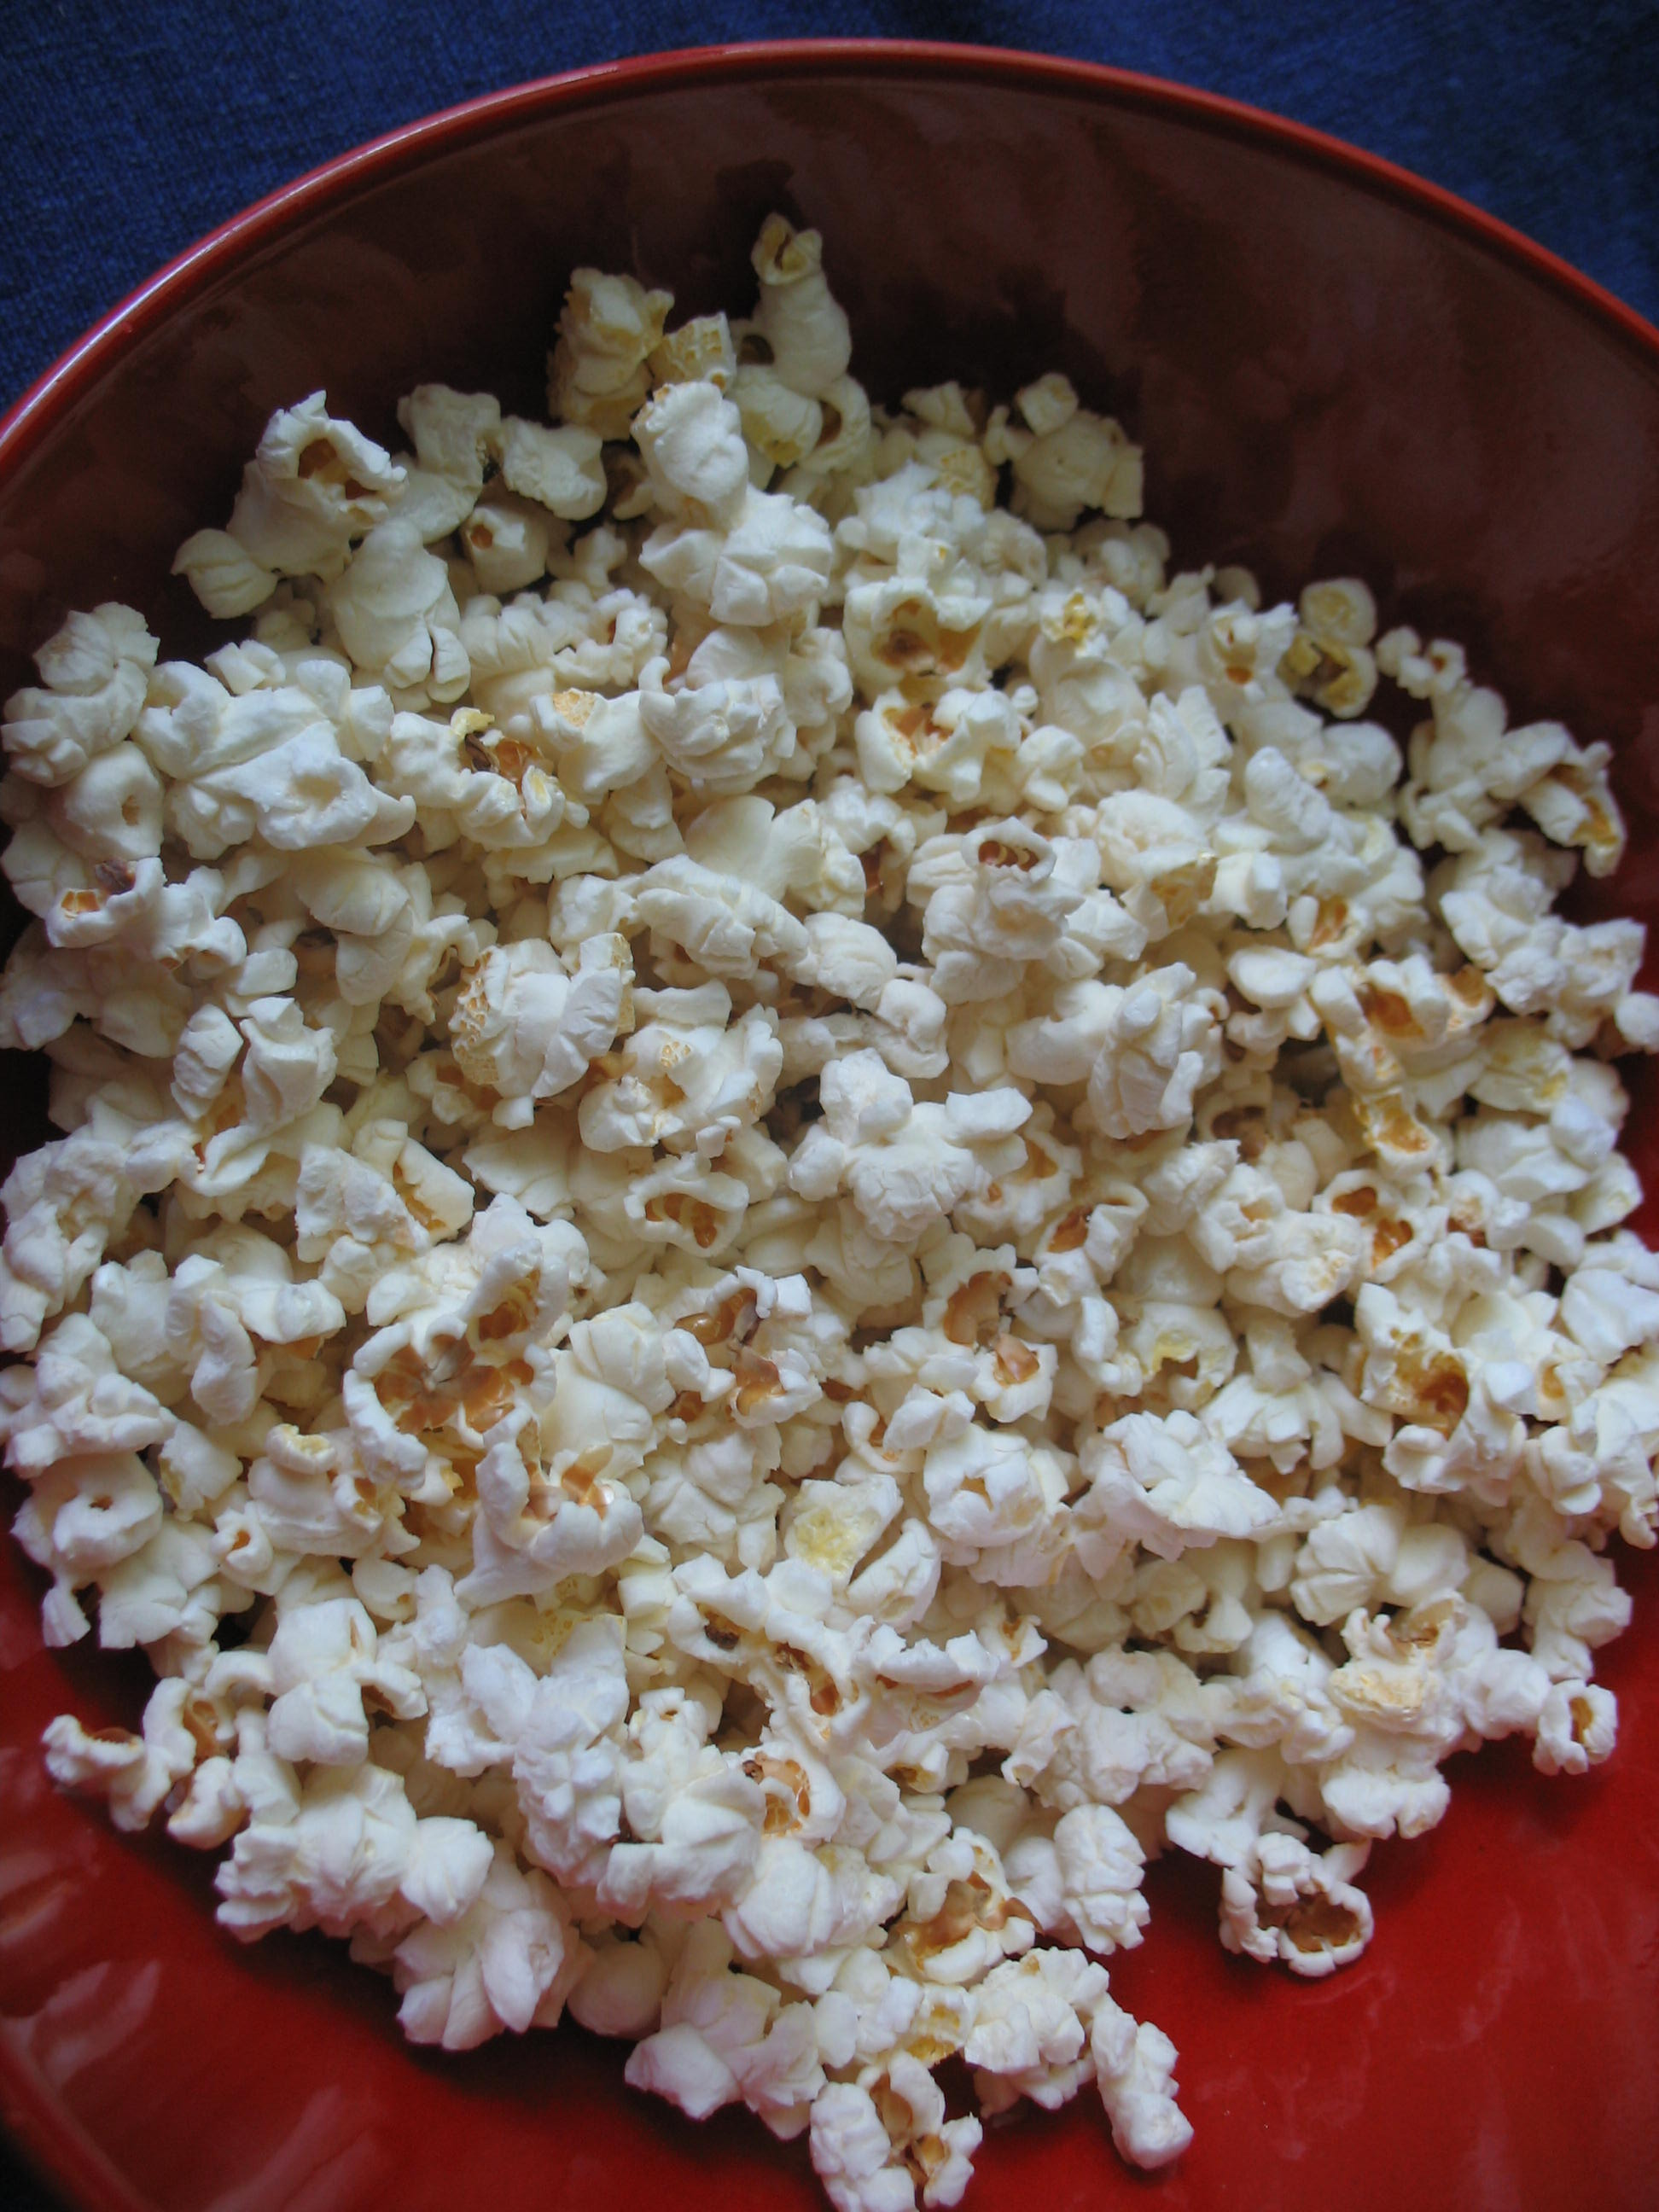 popcorn in red bowl